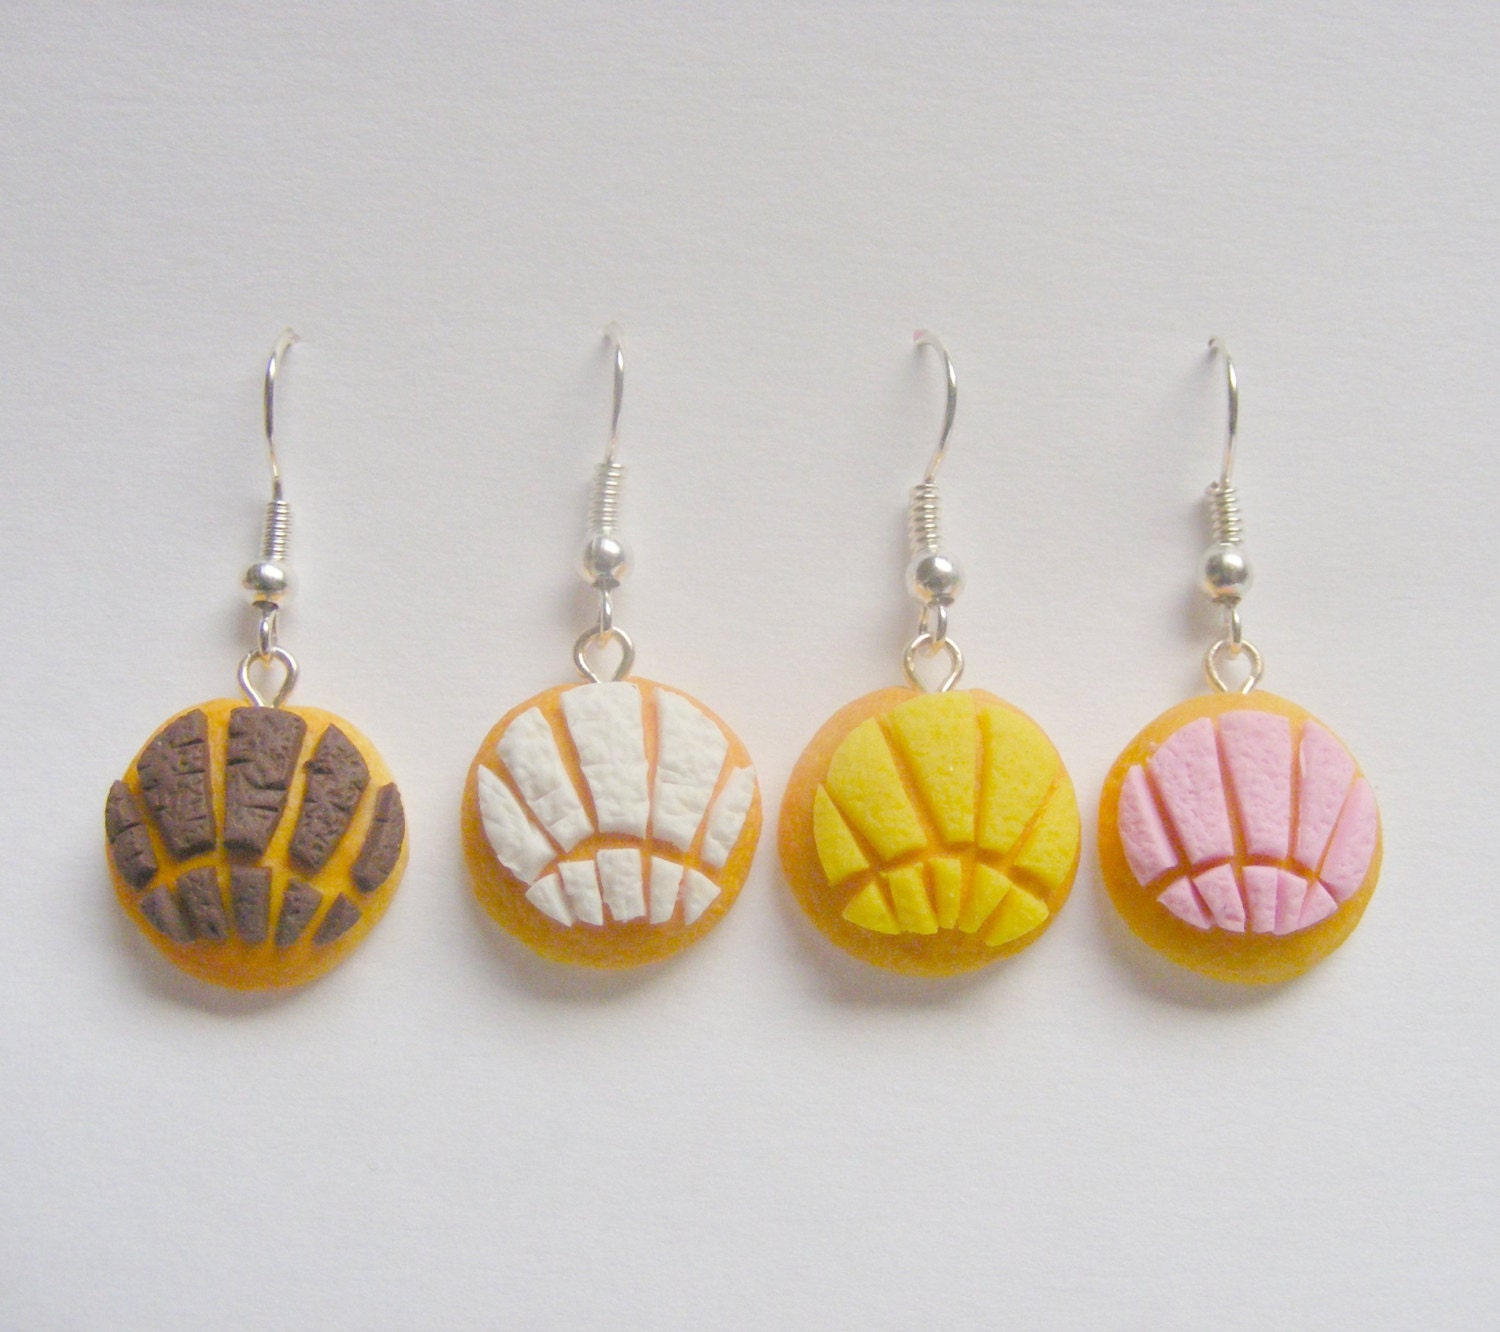 Food Jewelry Pan Dulce Conchas Dulce Concha Miniature Food Mini Food Concha Earrings Food Jewellery Mexican Food Polymer Clay Food